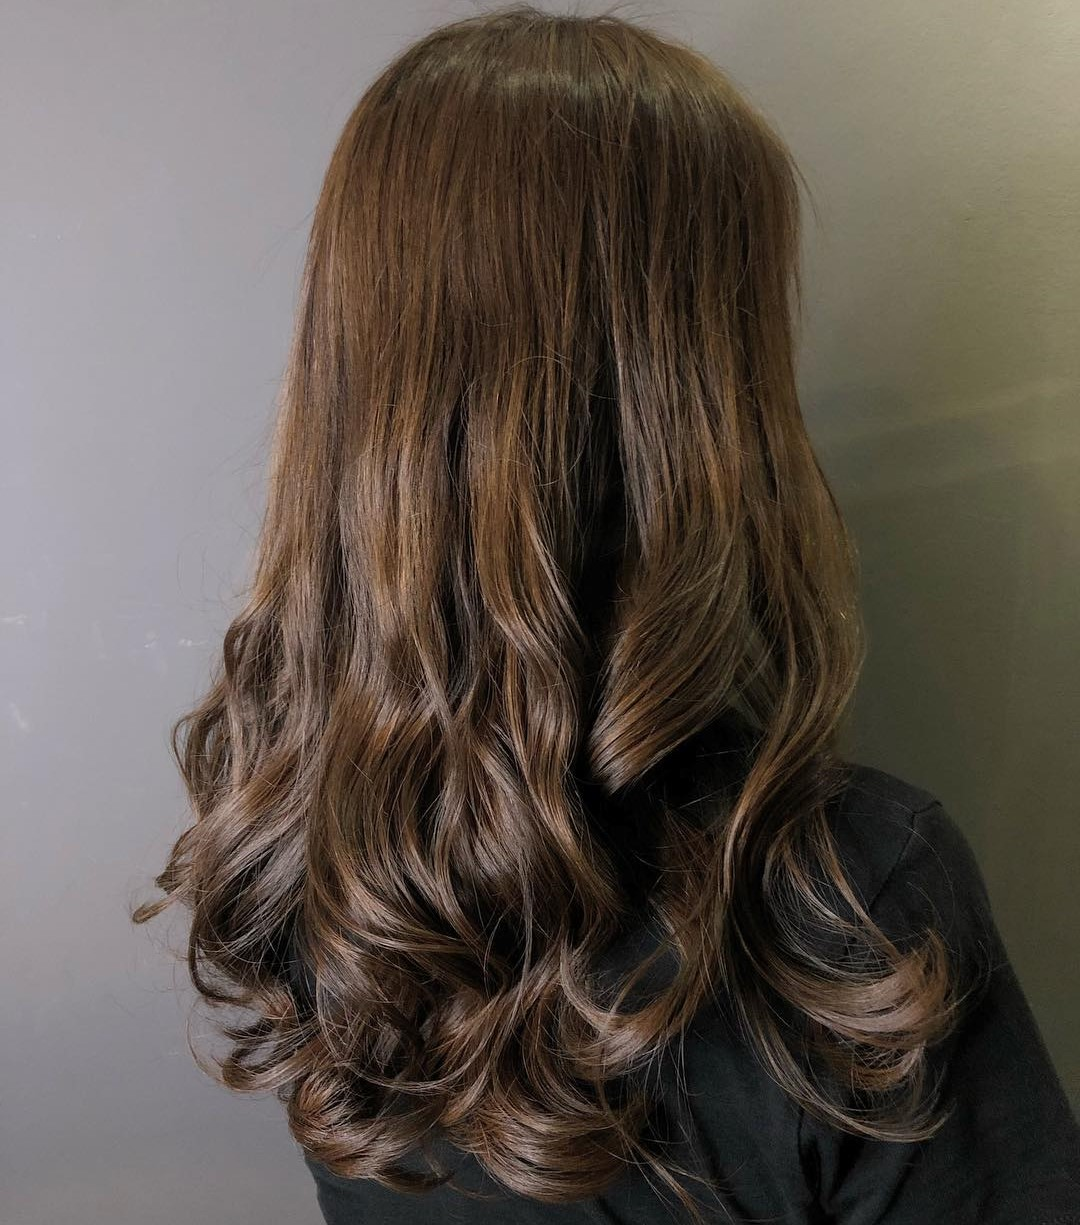 Long Hair with Midshaft-to-Ends Curls